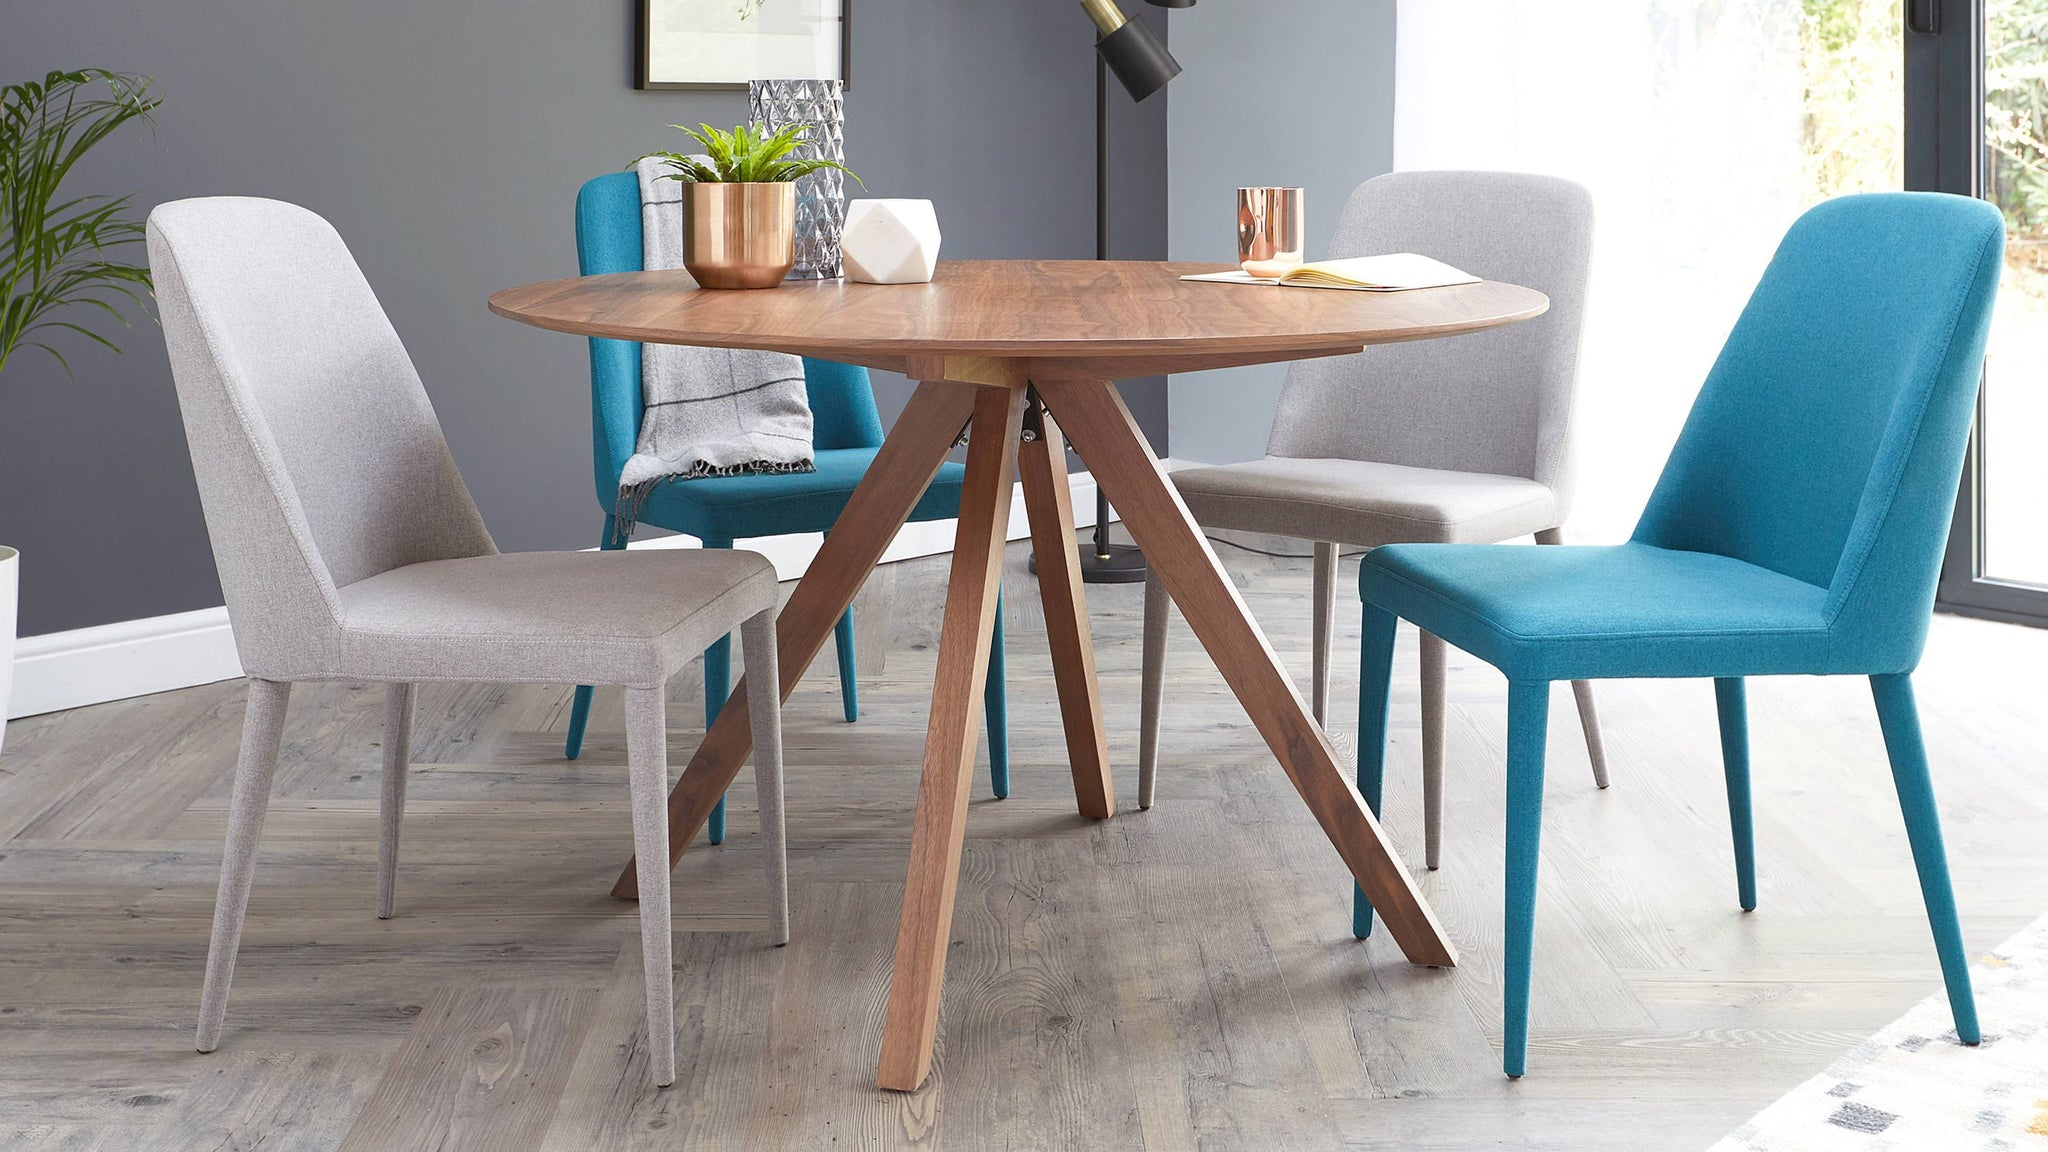 Buy mix and match colourful dining chairs